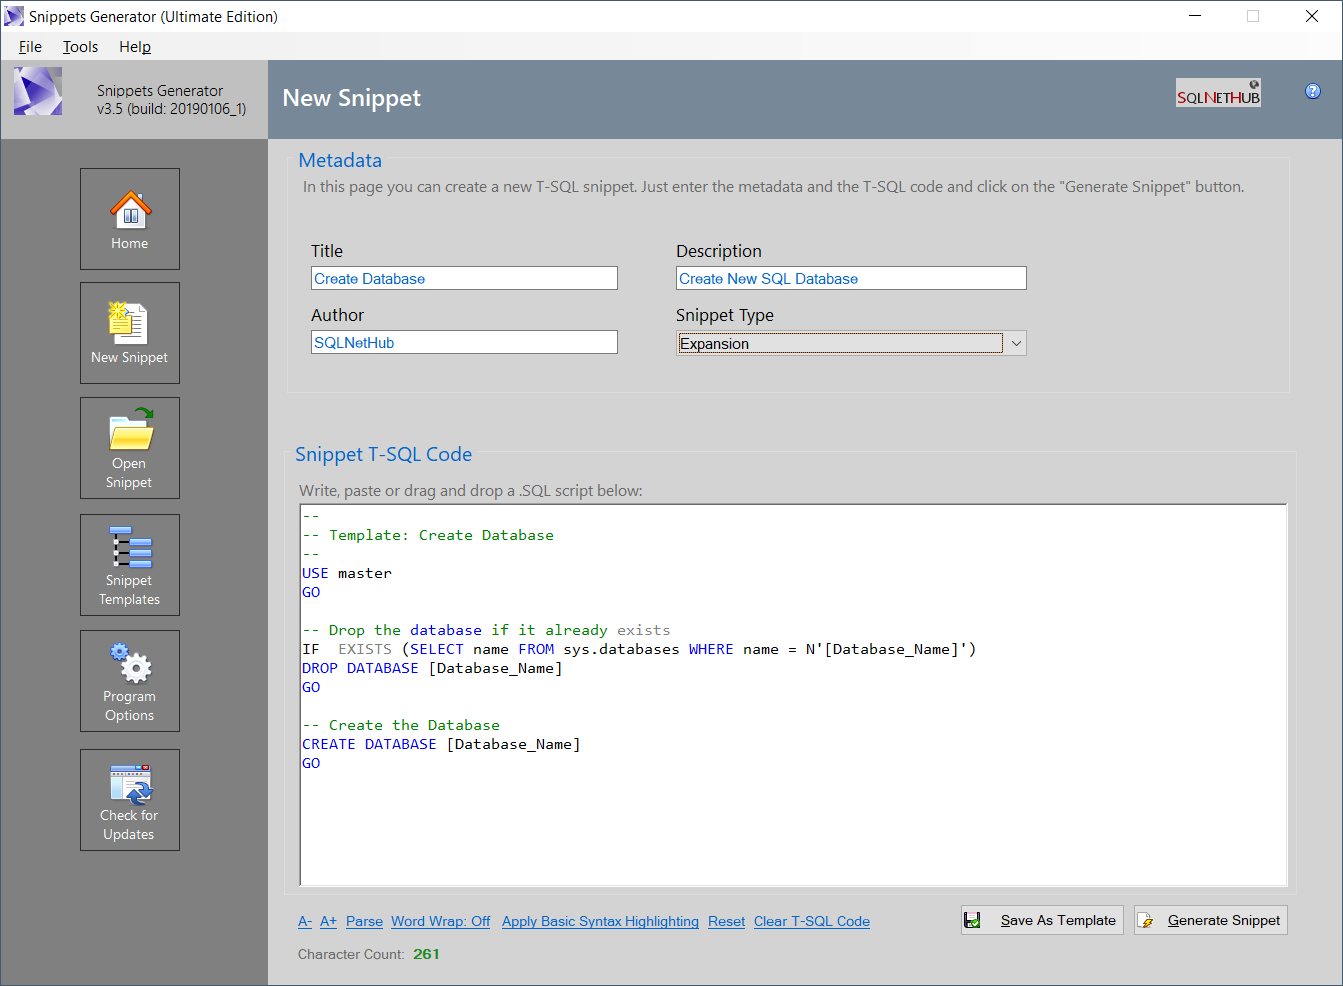 Screenshot: Snippets Generator v3.5 - Creating a New Snippet.